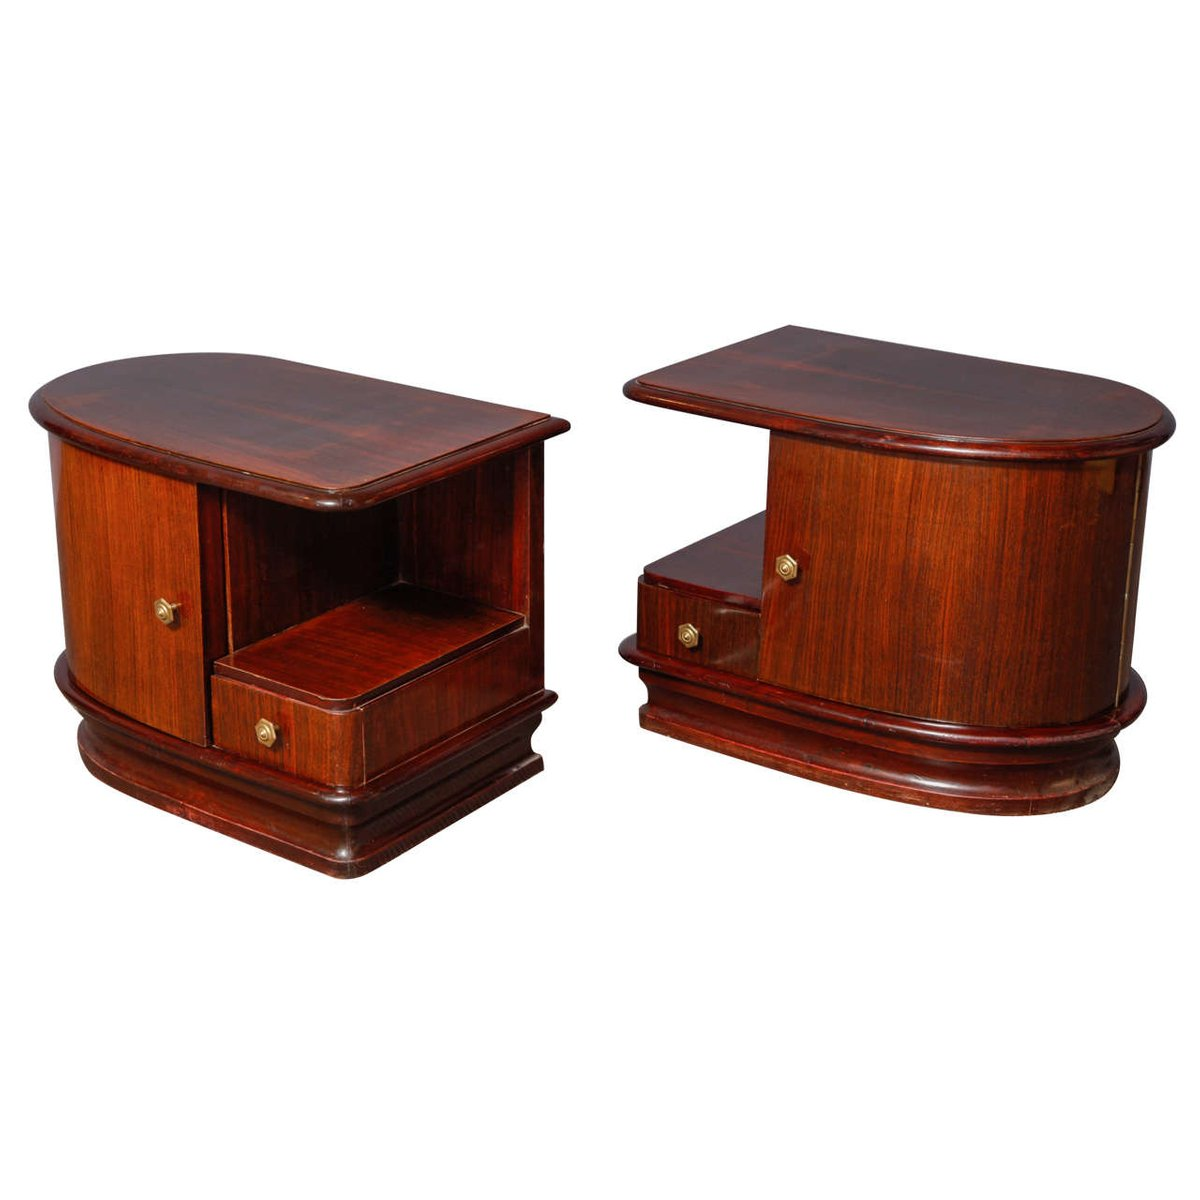 tables de chevet art deco 1930 set de 2 en vente sur pamono. Black Bedroom Furniture Sets. Home Design Ideas